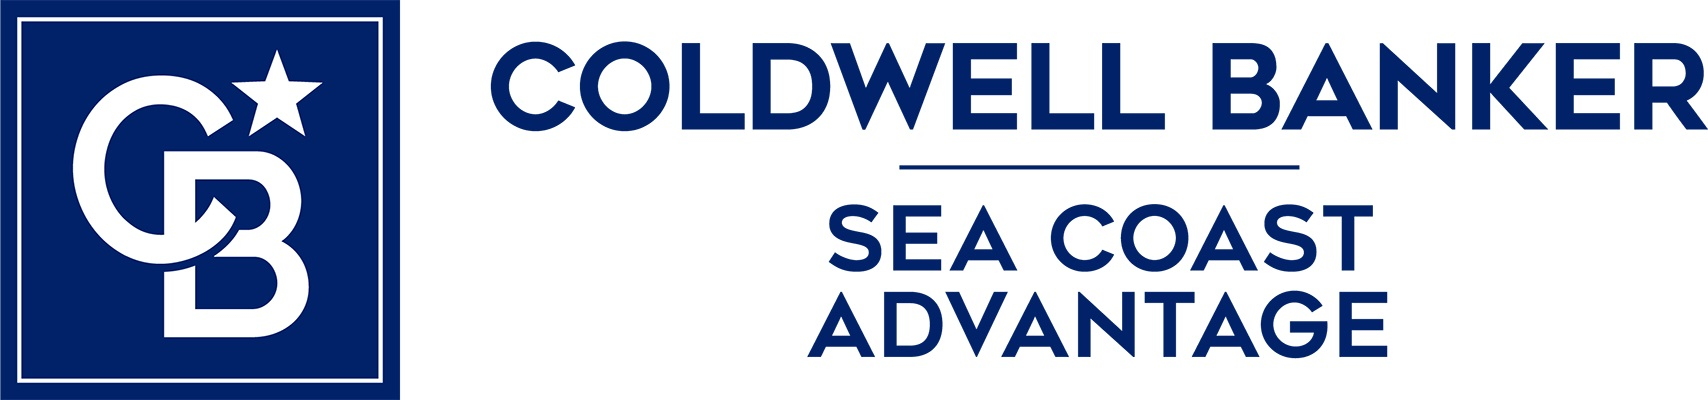 Ashley Dance - Coldwell Banker Sea Coast Advantage Realty